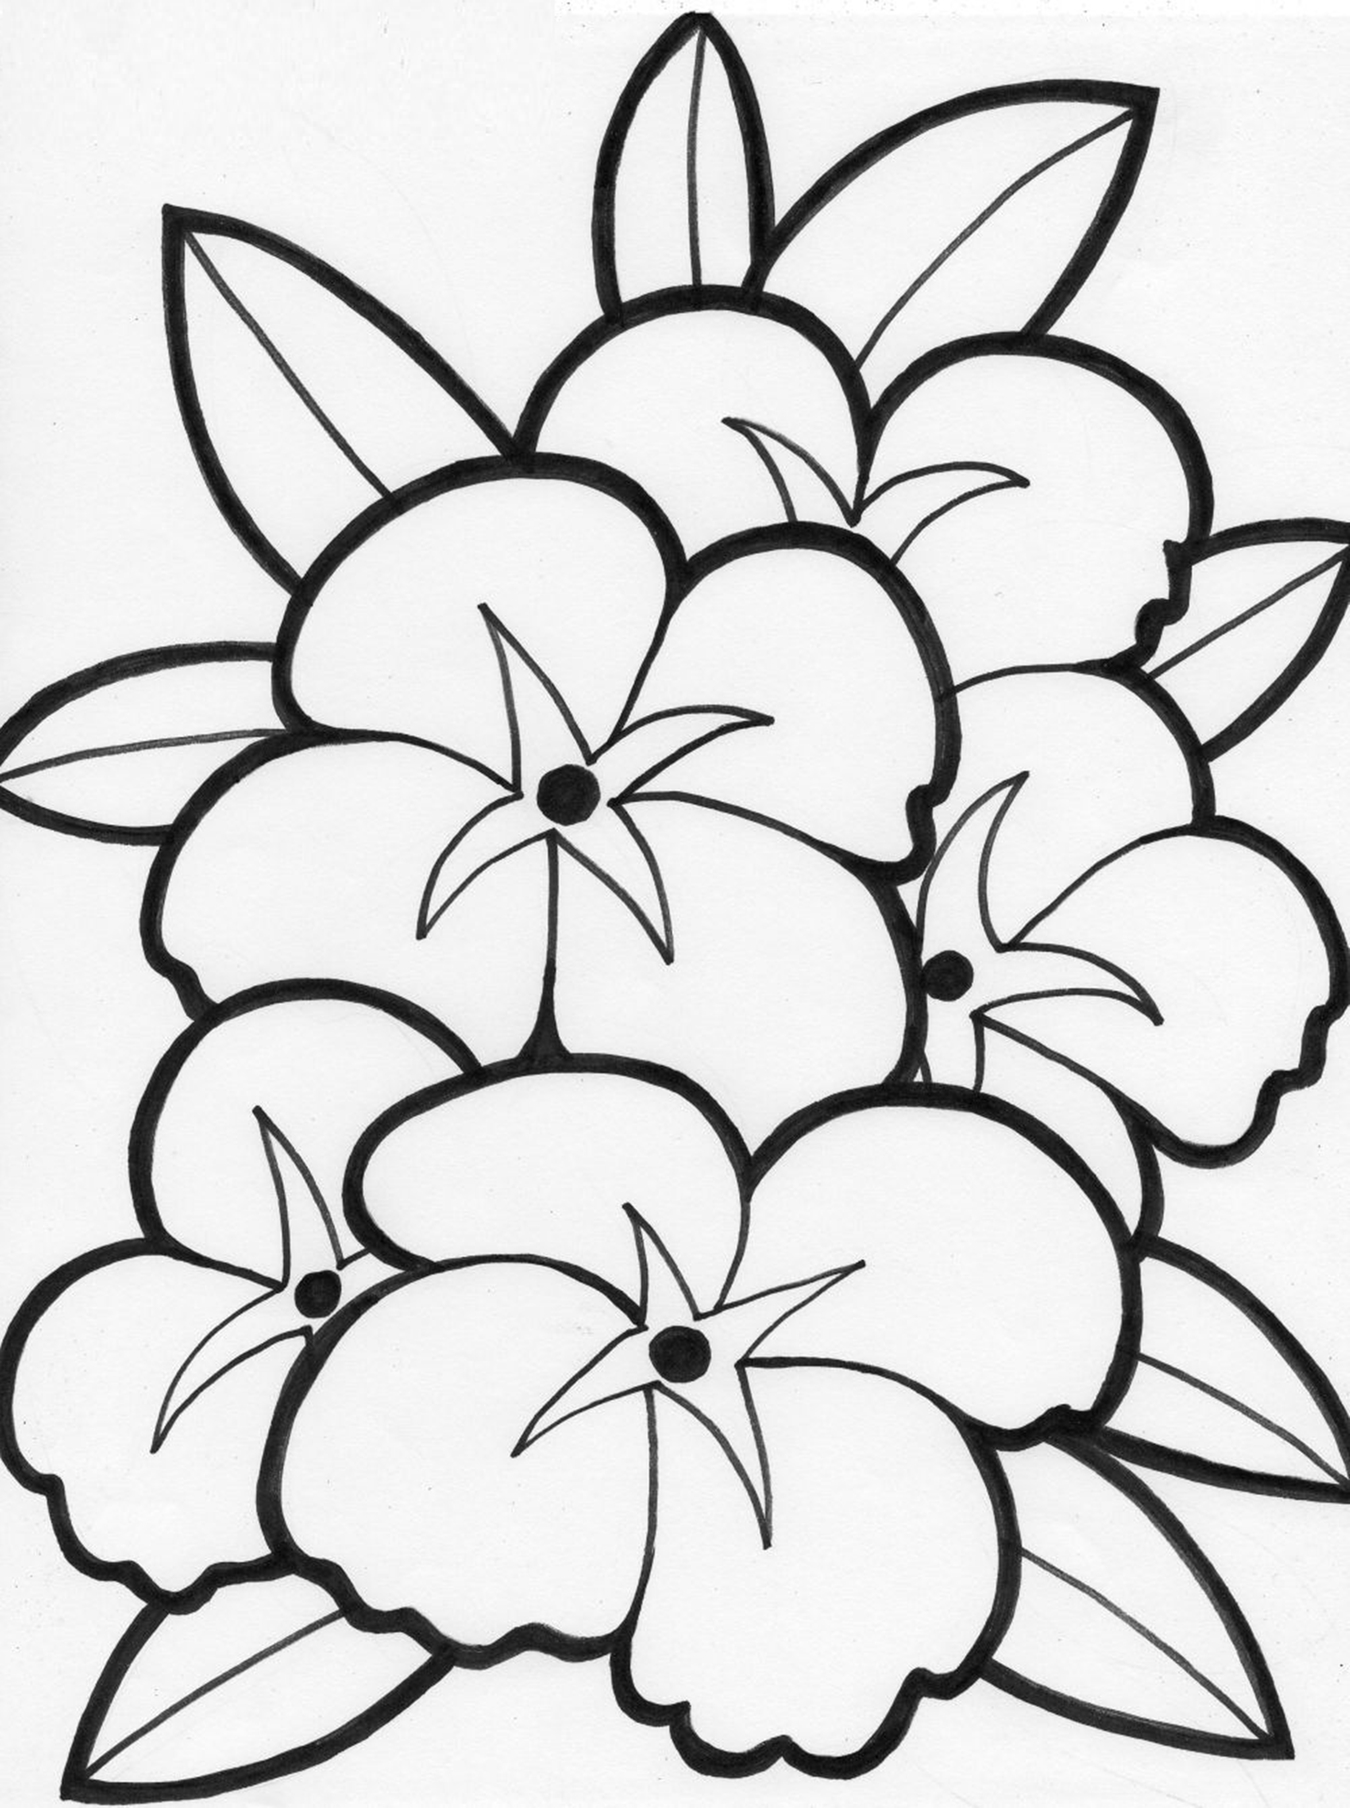 coloring pages of bladderworts plants - photo#38